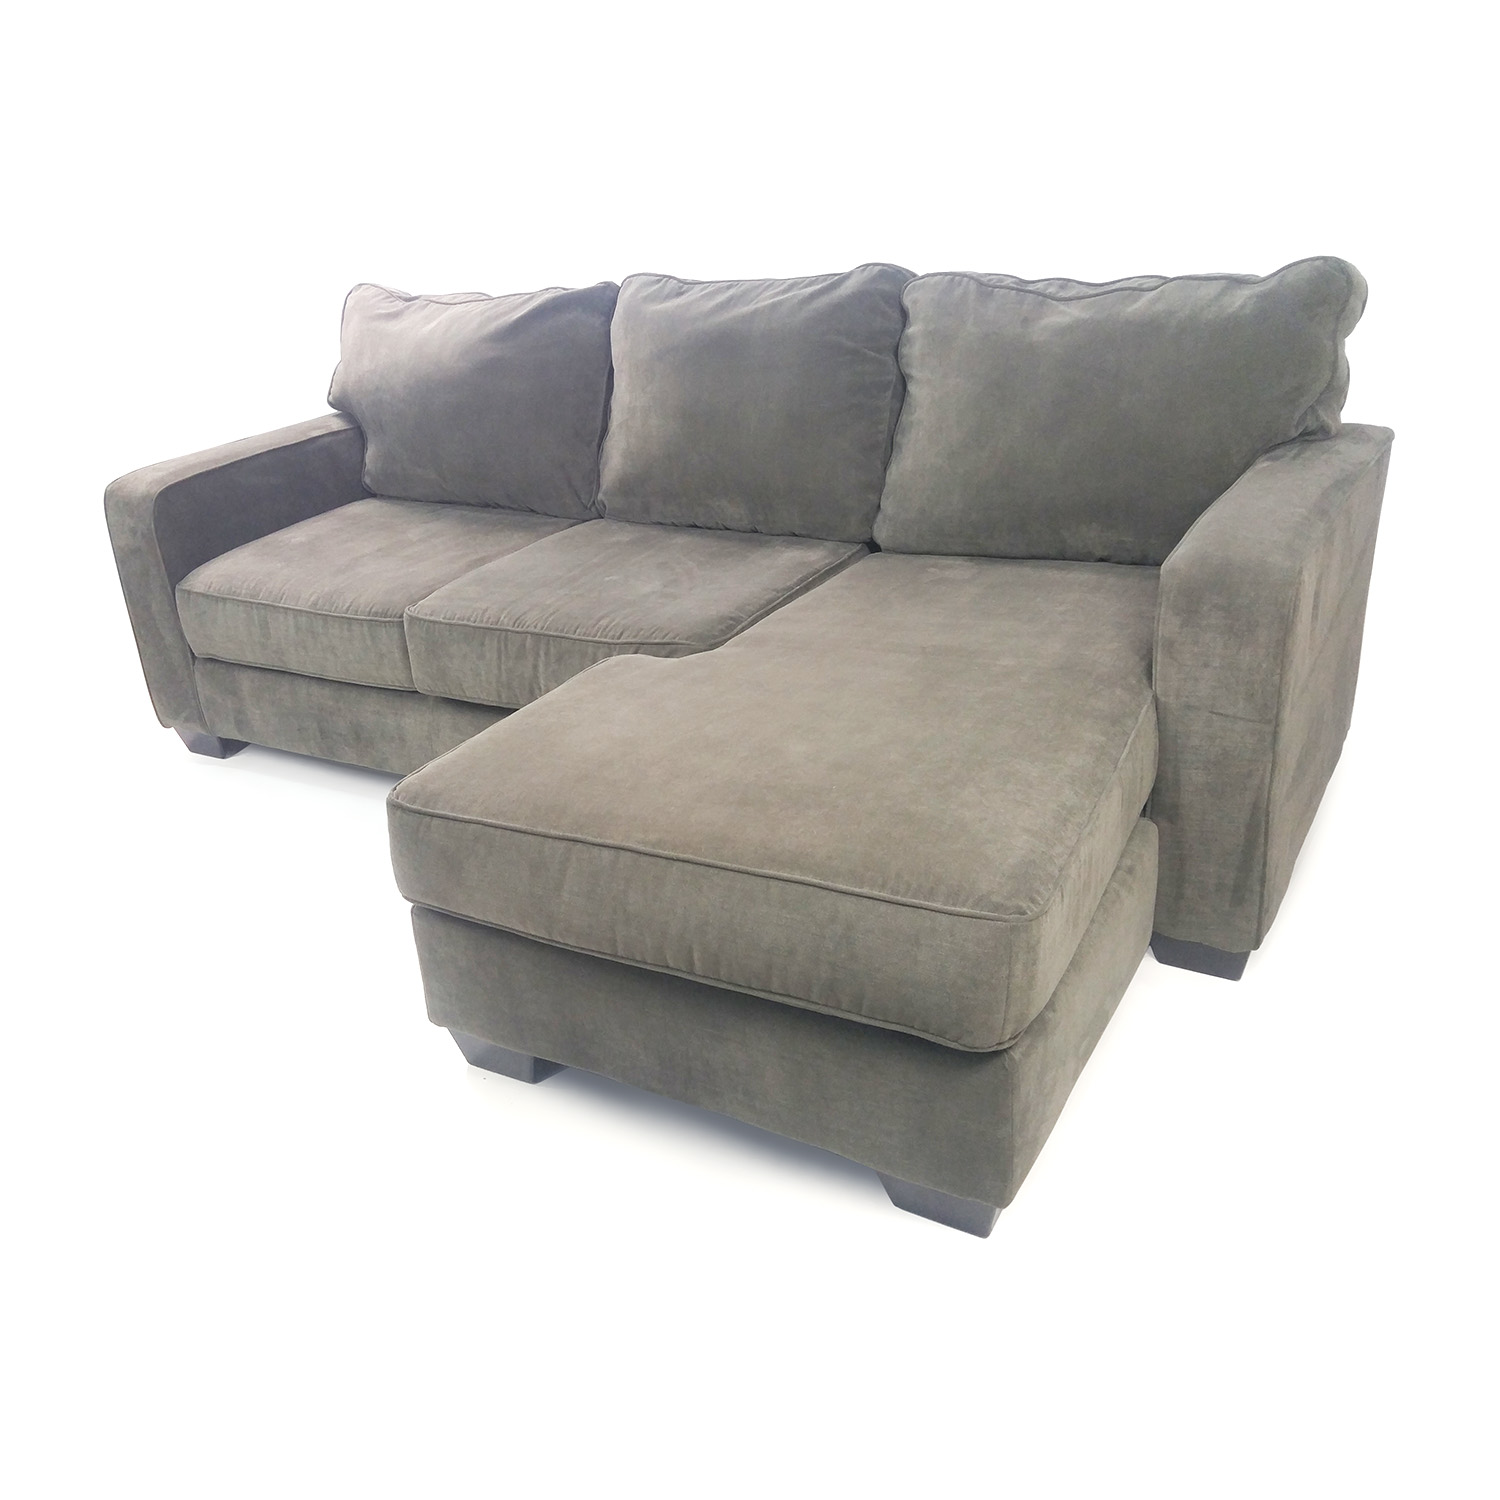 50% OFF Ashley Furniture Hodan Sofa Chaise Sofas